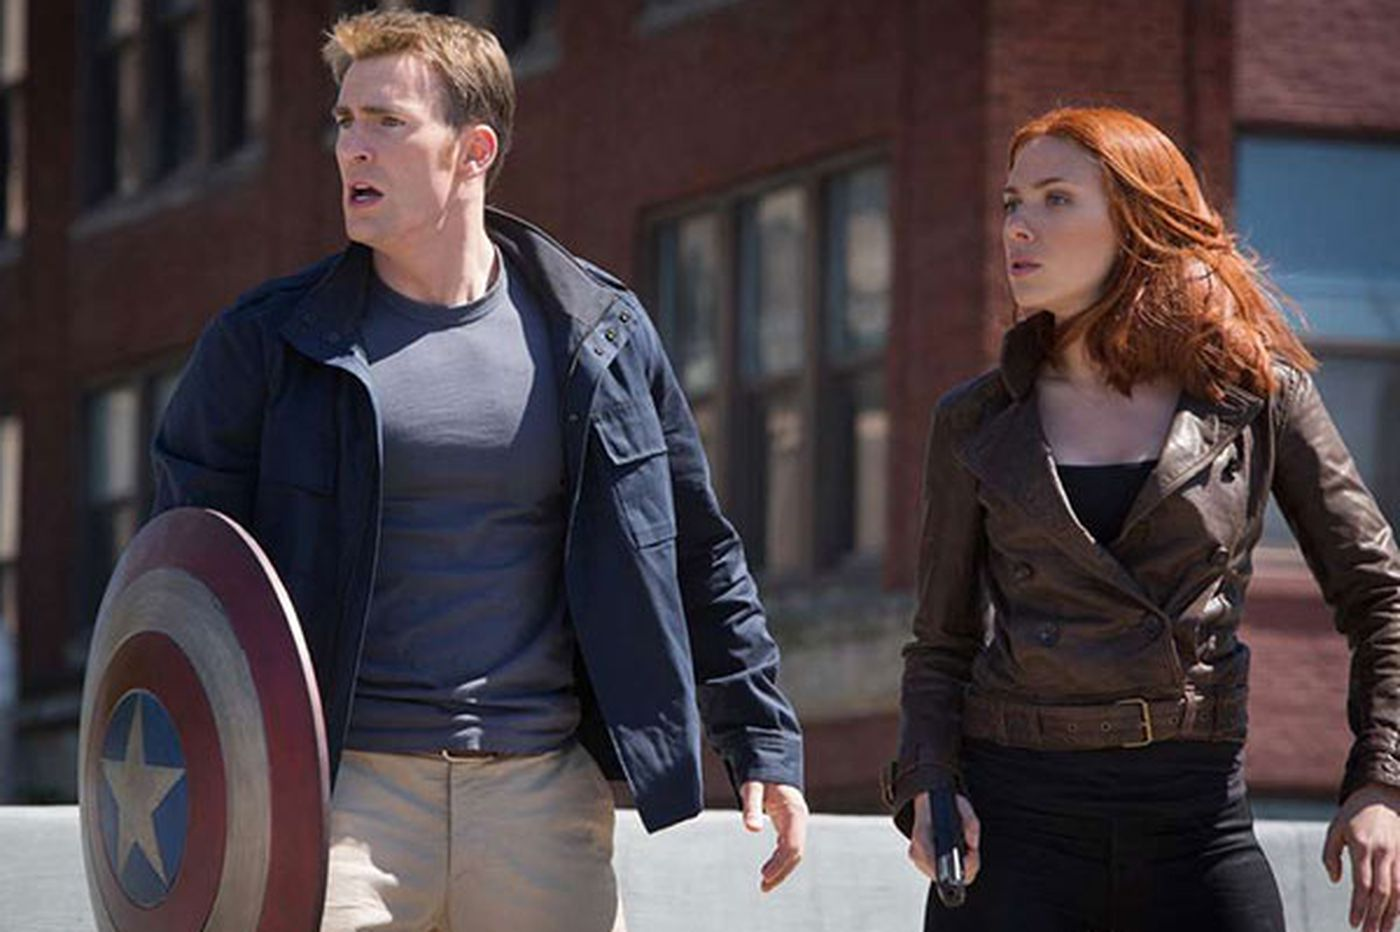 'Winter Soldier': Captain America beaten by Hollywood bluster